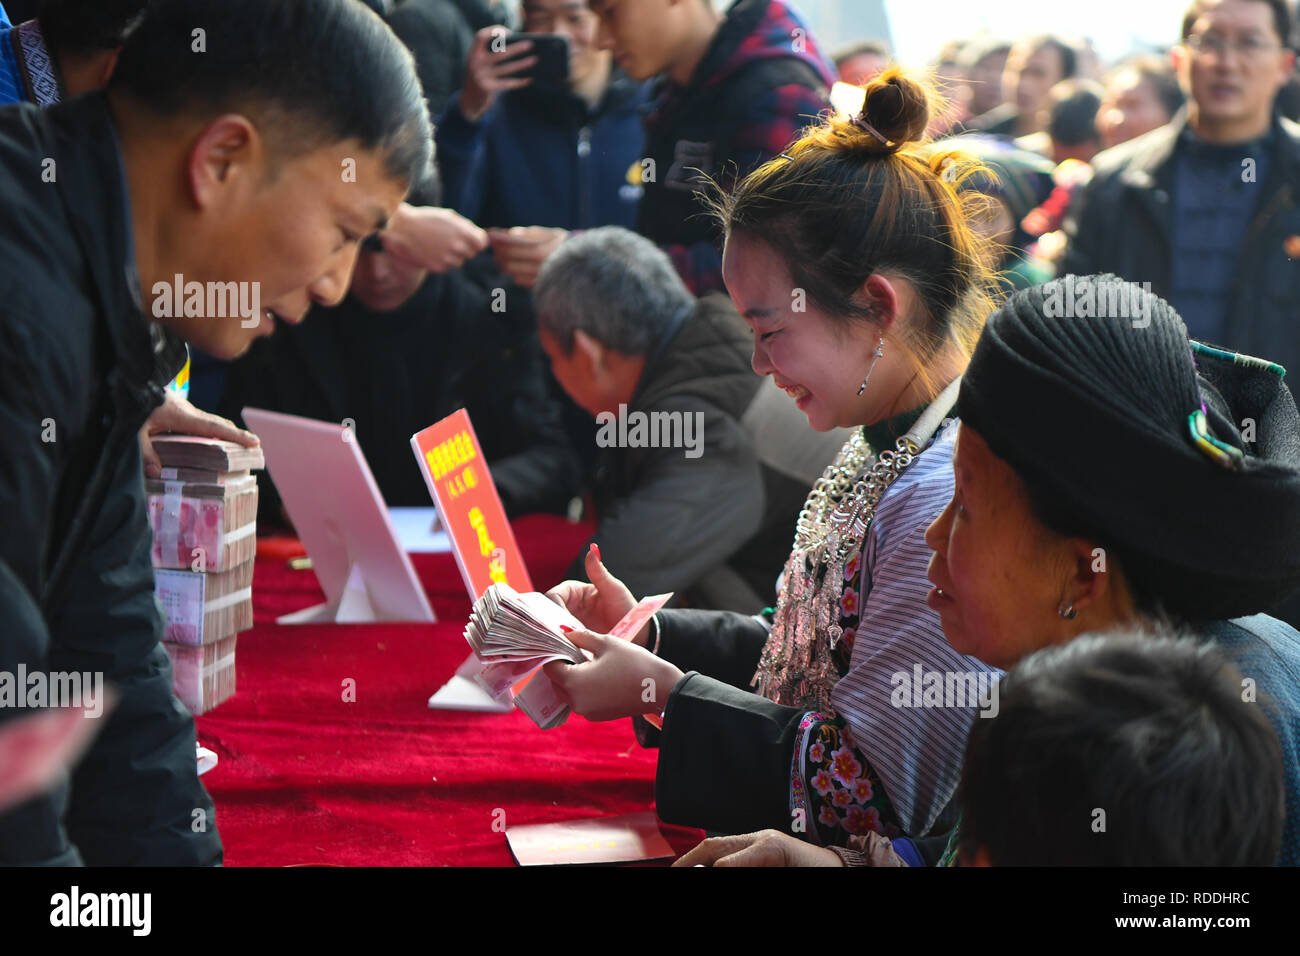 Huayuan, China's Hunan Province. 17th Jan, 2019. A villager counts the money she earned from dividend in Shibadong Village of Huayuan County, central China's Hunan Province, Jan. 17, 2019. Villagers from Shibadong celebrate their traditional New Year in various ways. Credit: Xue Yuge/Xinhua/Alamy Live News - Stock Image